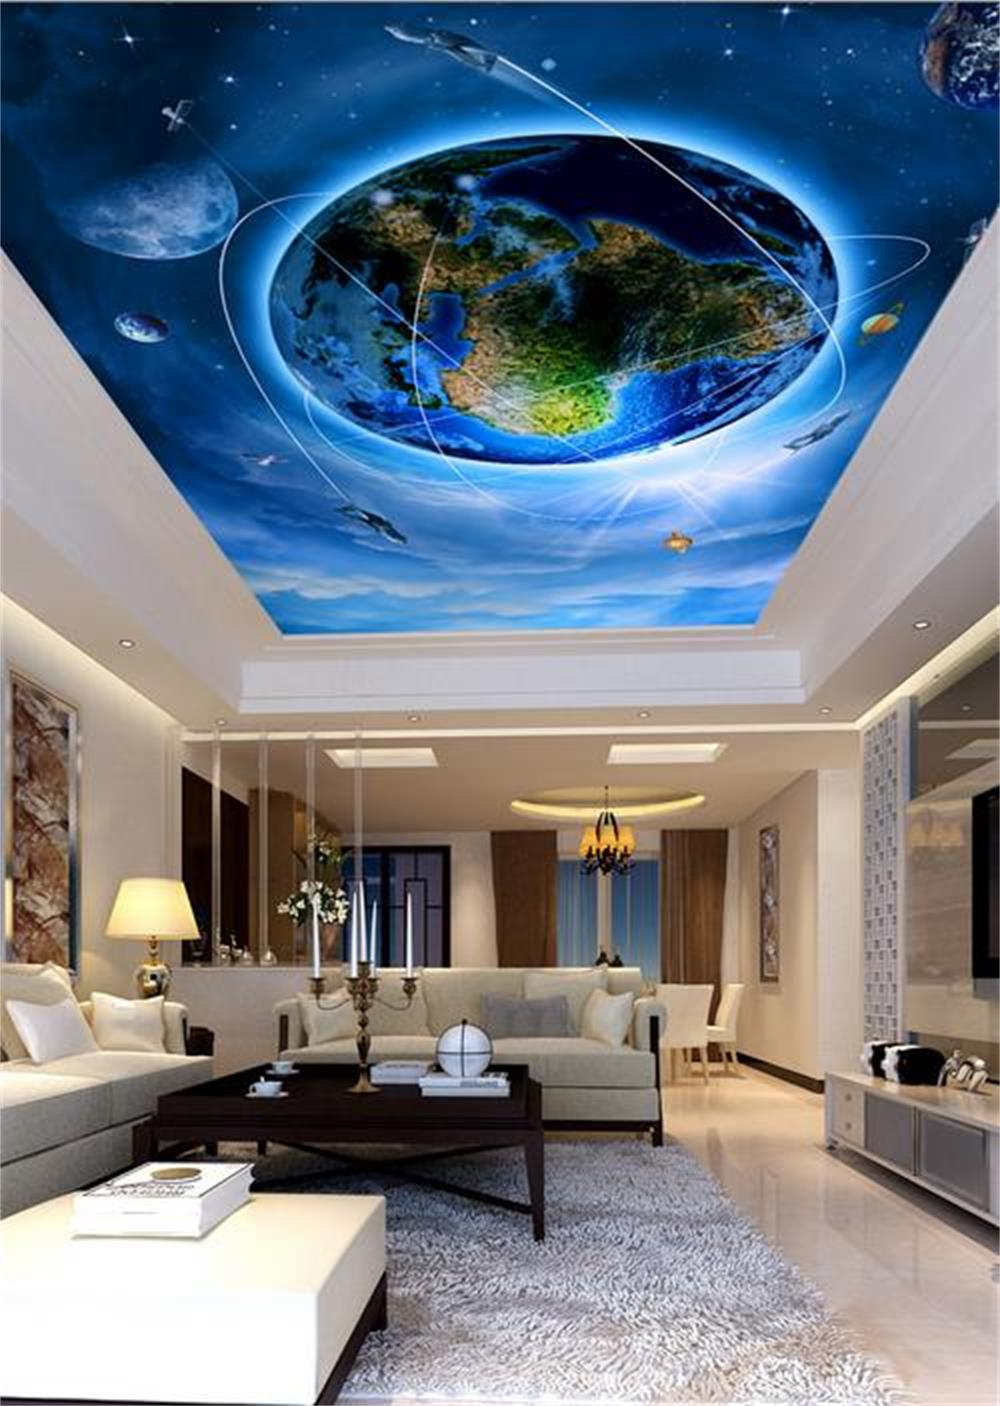 Compare prices on hotel ceiling design online shopping for Hotel ceiling design